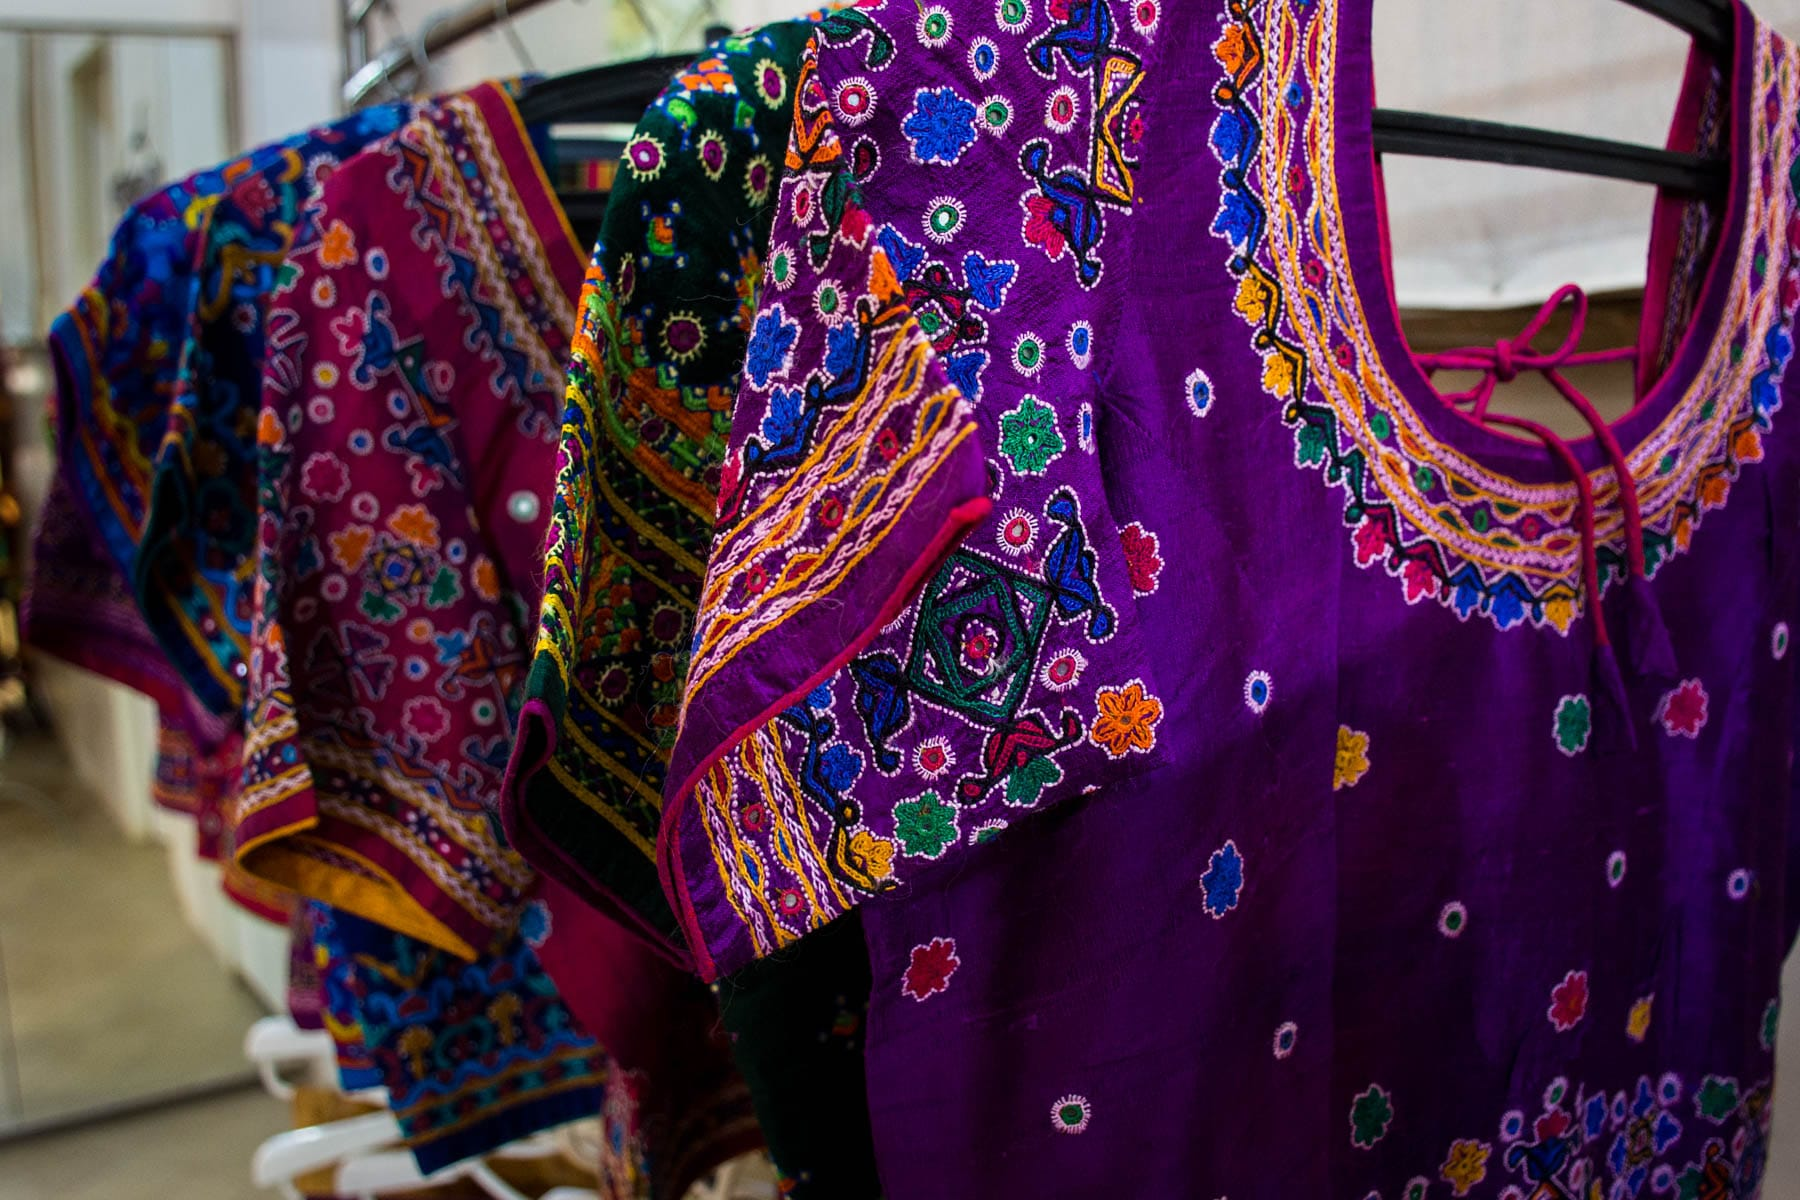 Textiles and crafts of Kutch, Gujarat, India - Colorful embroidered cholis in Bhujodi - Lost With Purpose